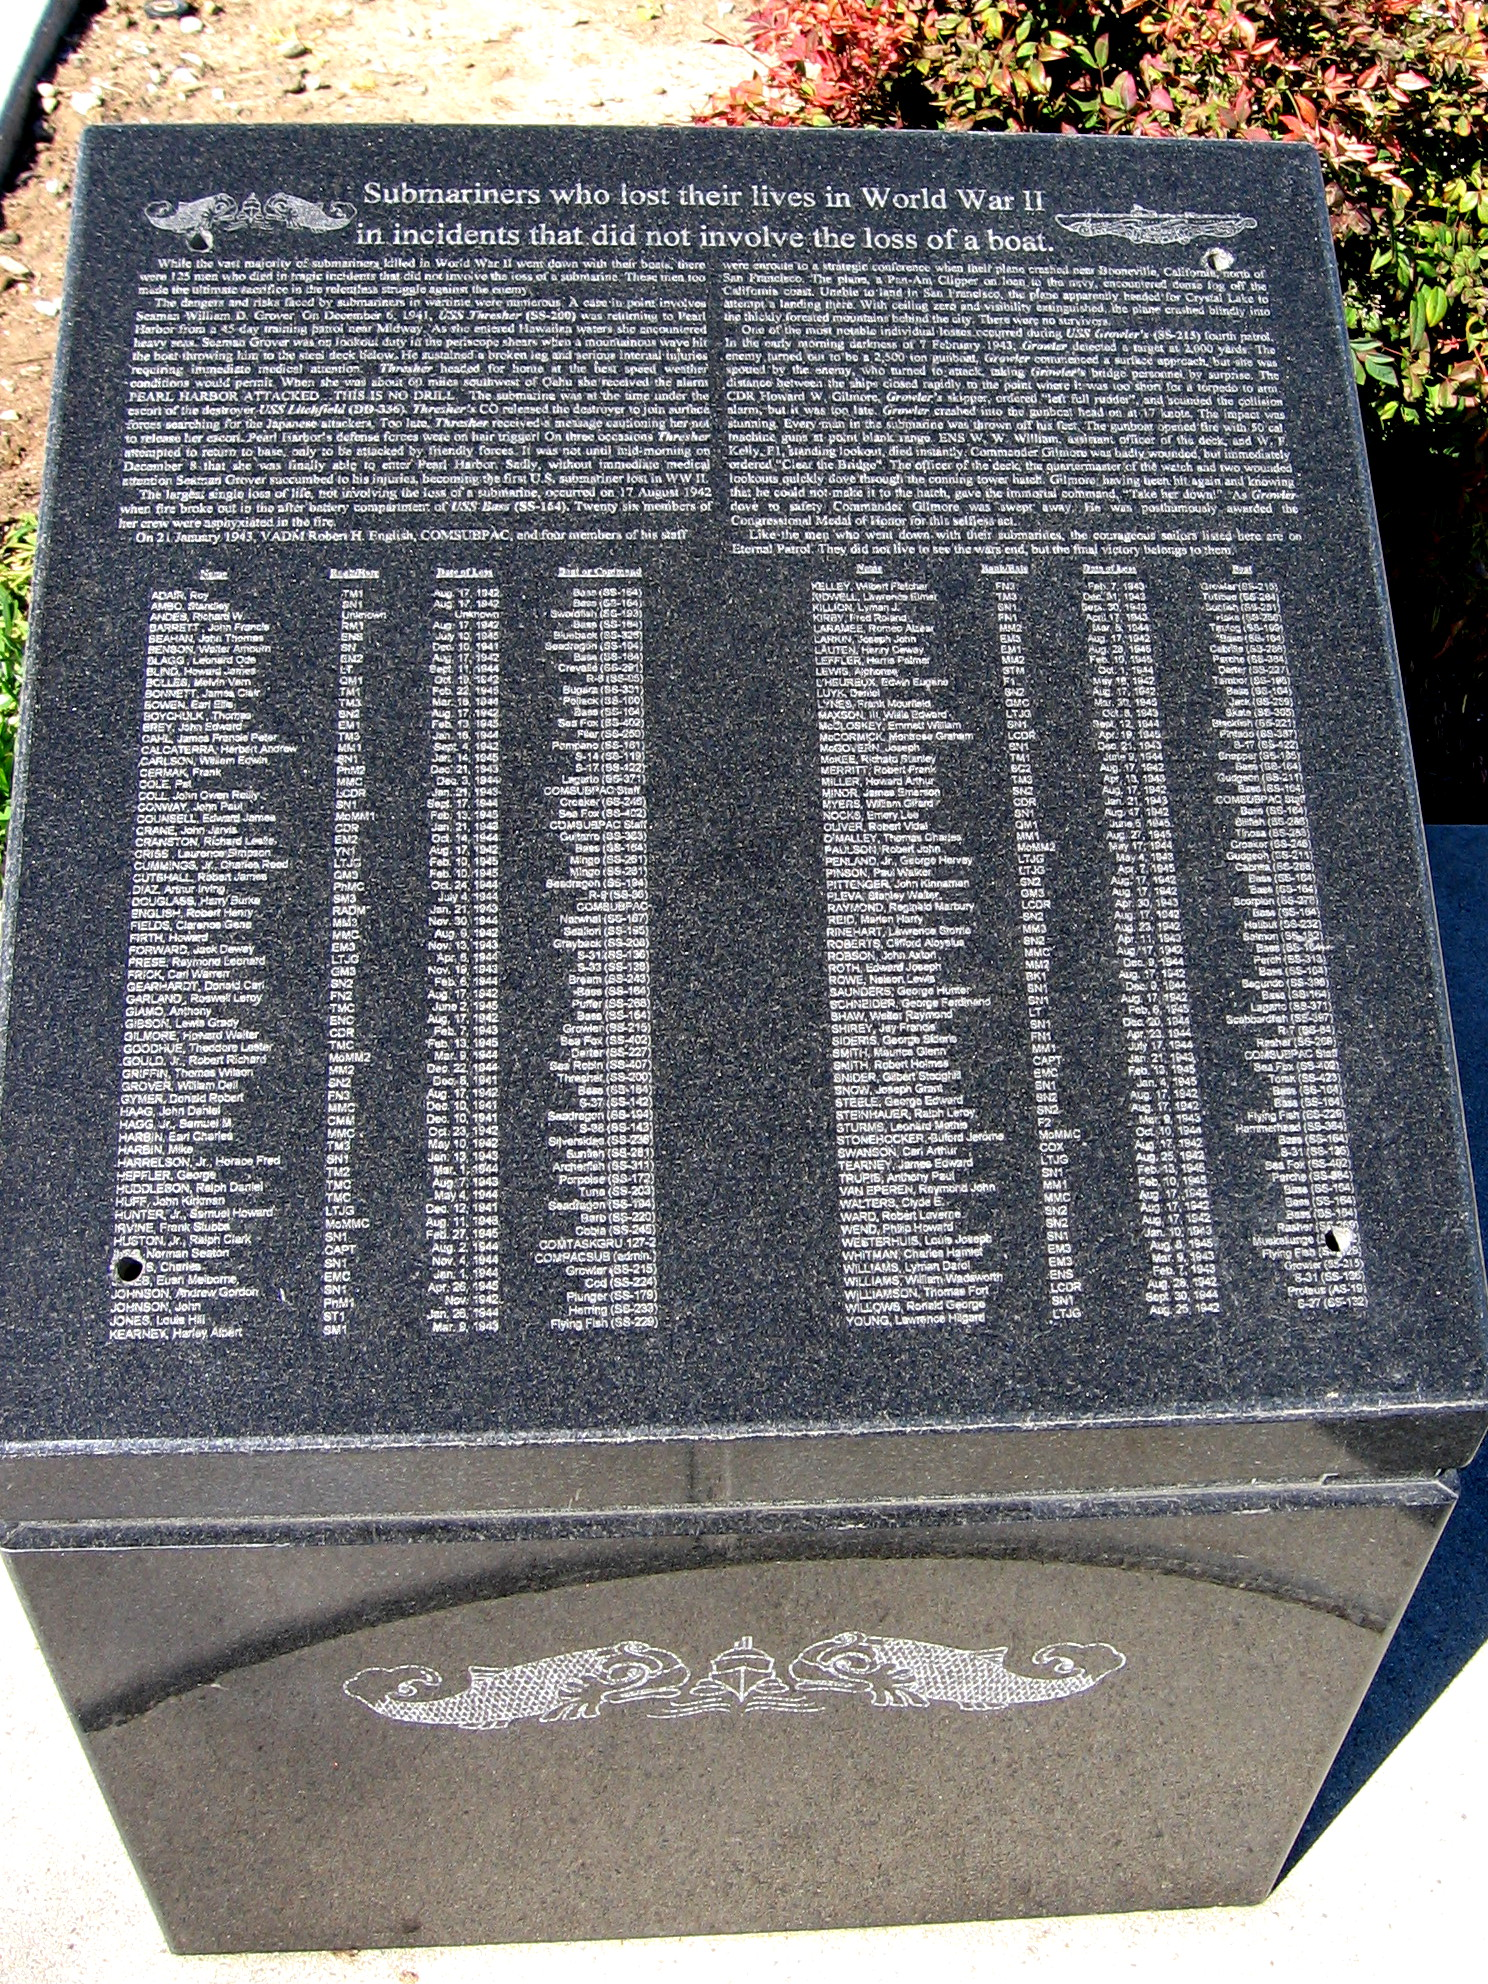 Submariners who lost their lives in World War II in incidents that did not involve the loss of a boat.